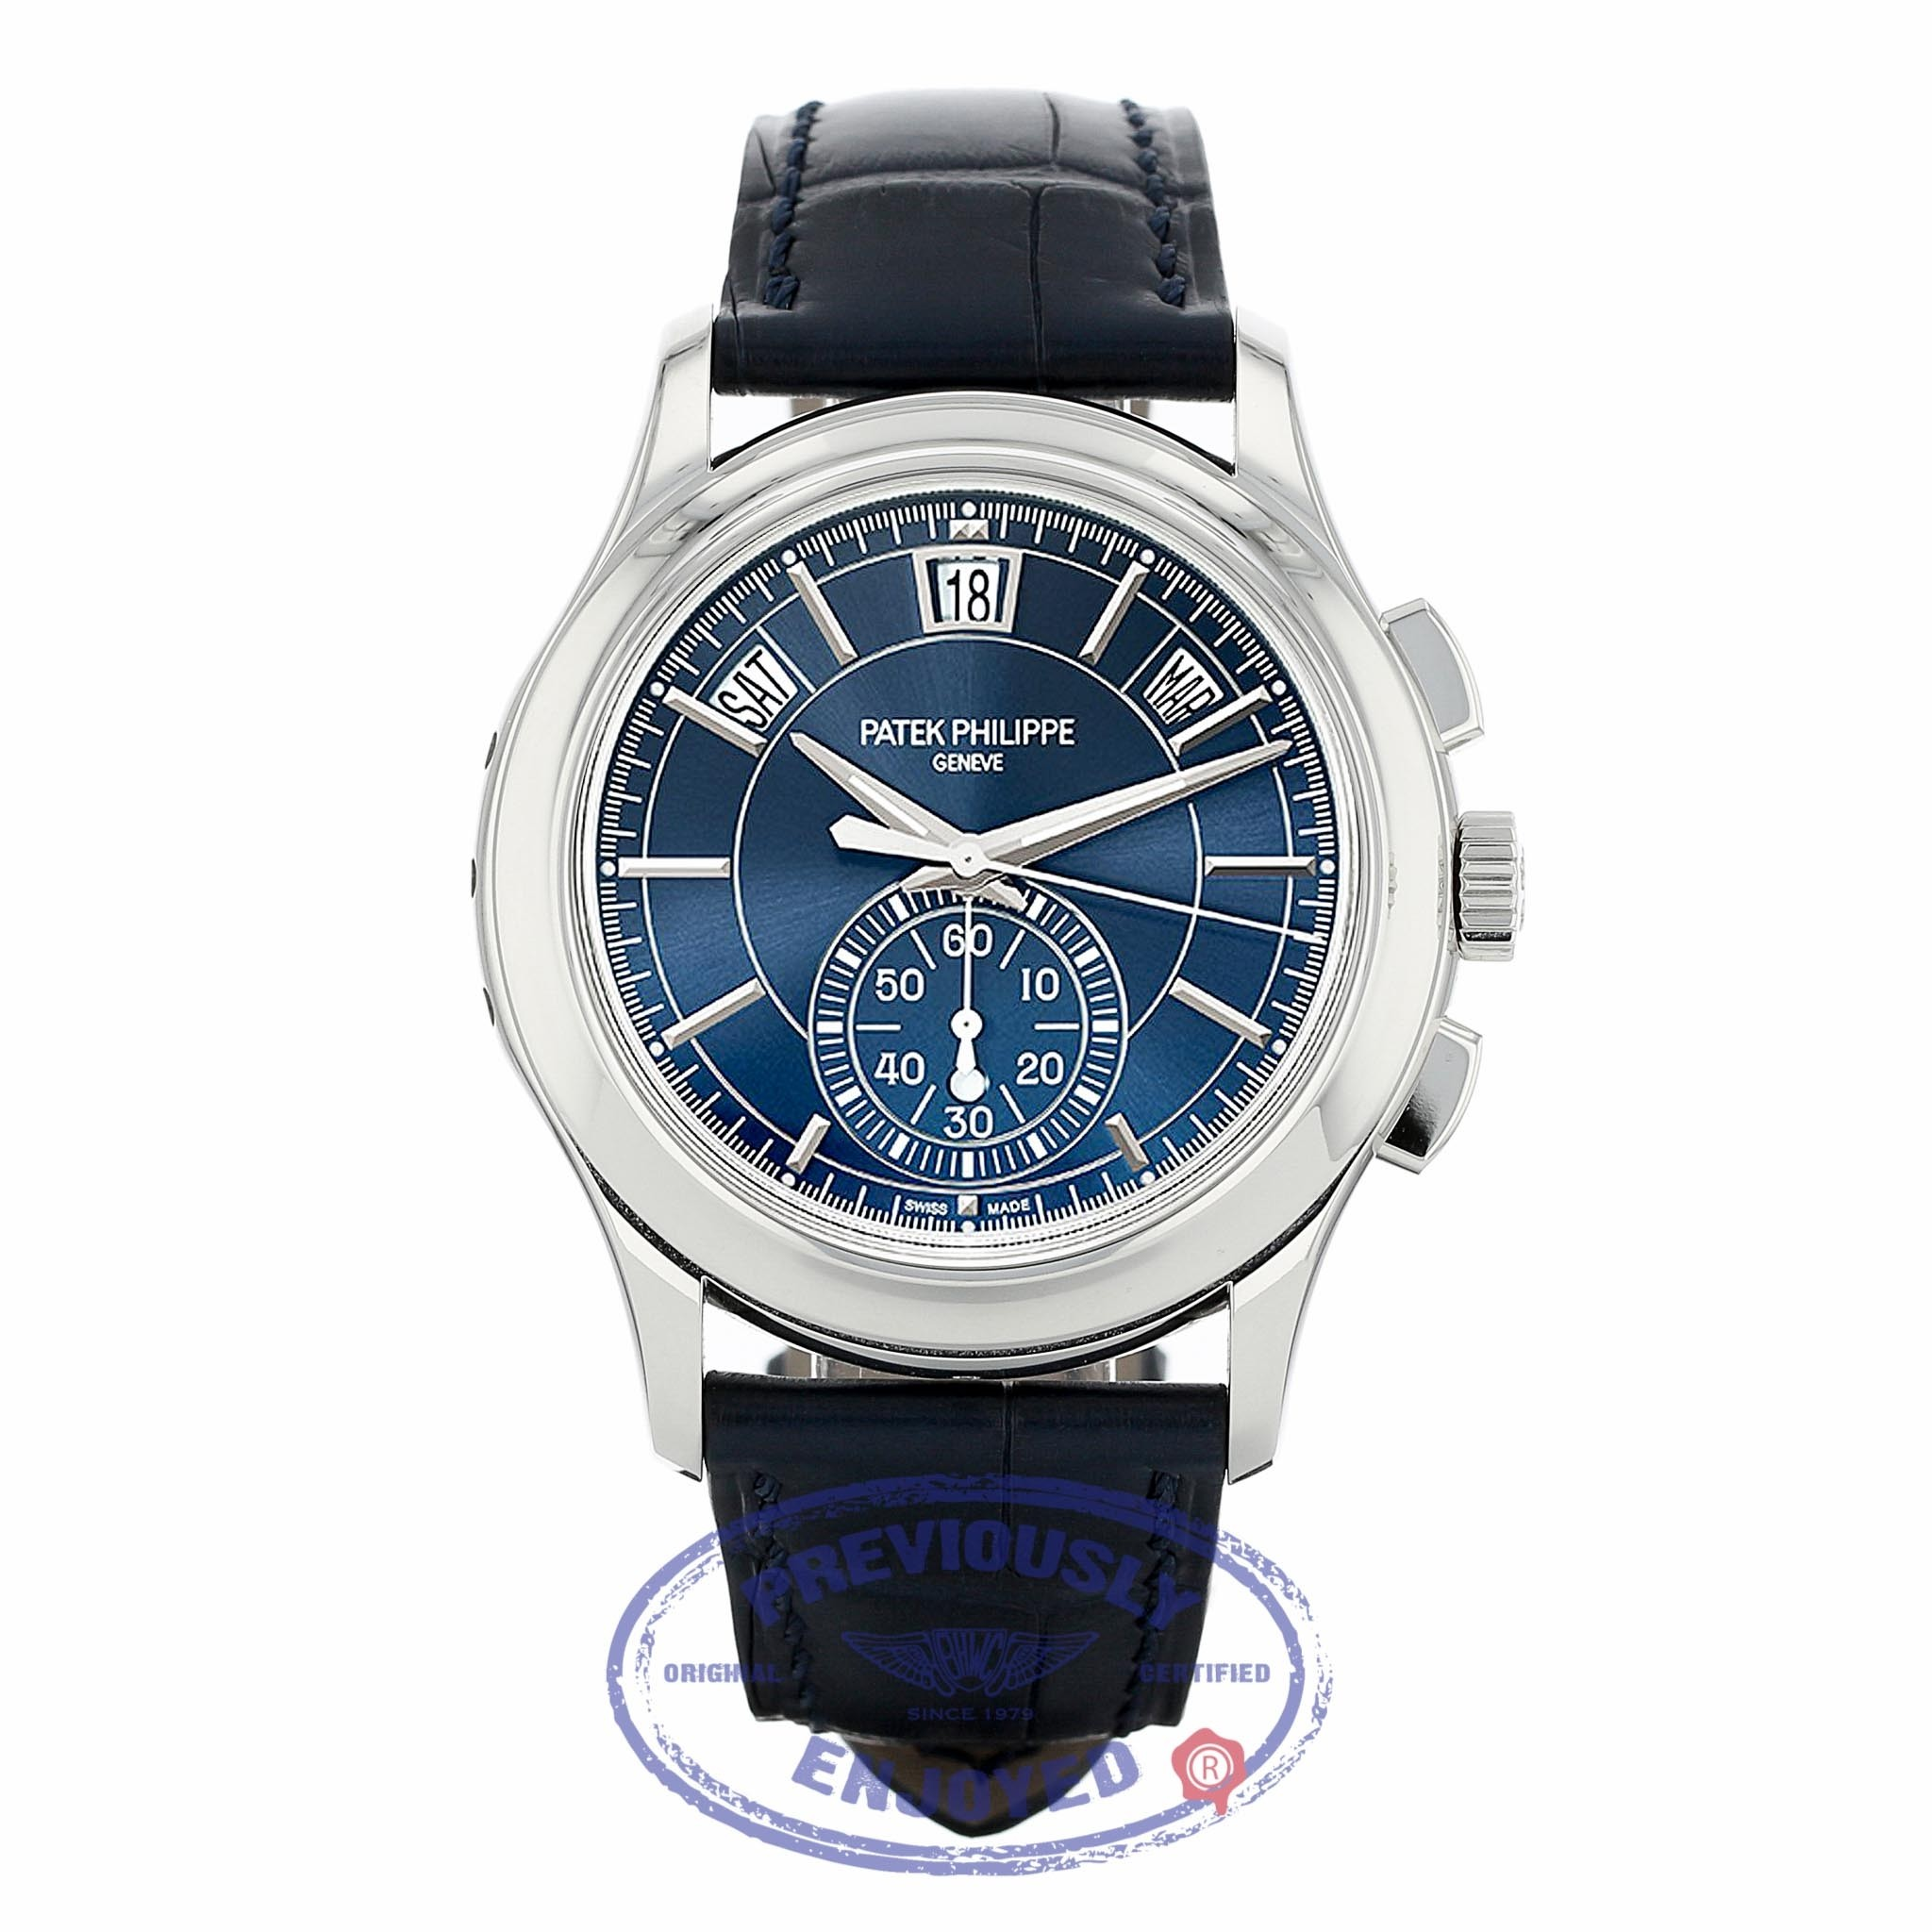 Patek Philippe Annual Chronograph Platinum Case Blue Dial 42mm 5905P-001 41K56Y - Beverly Hills Watch